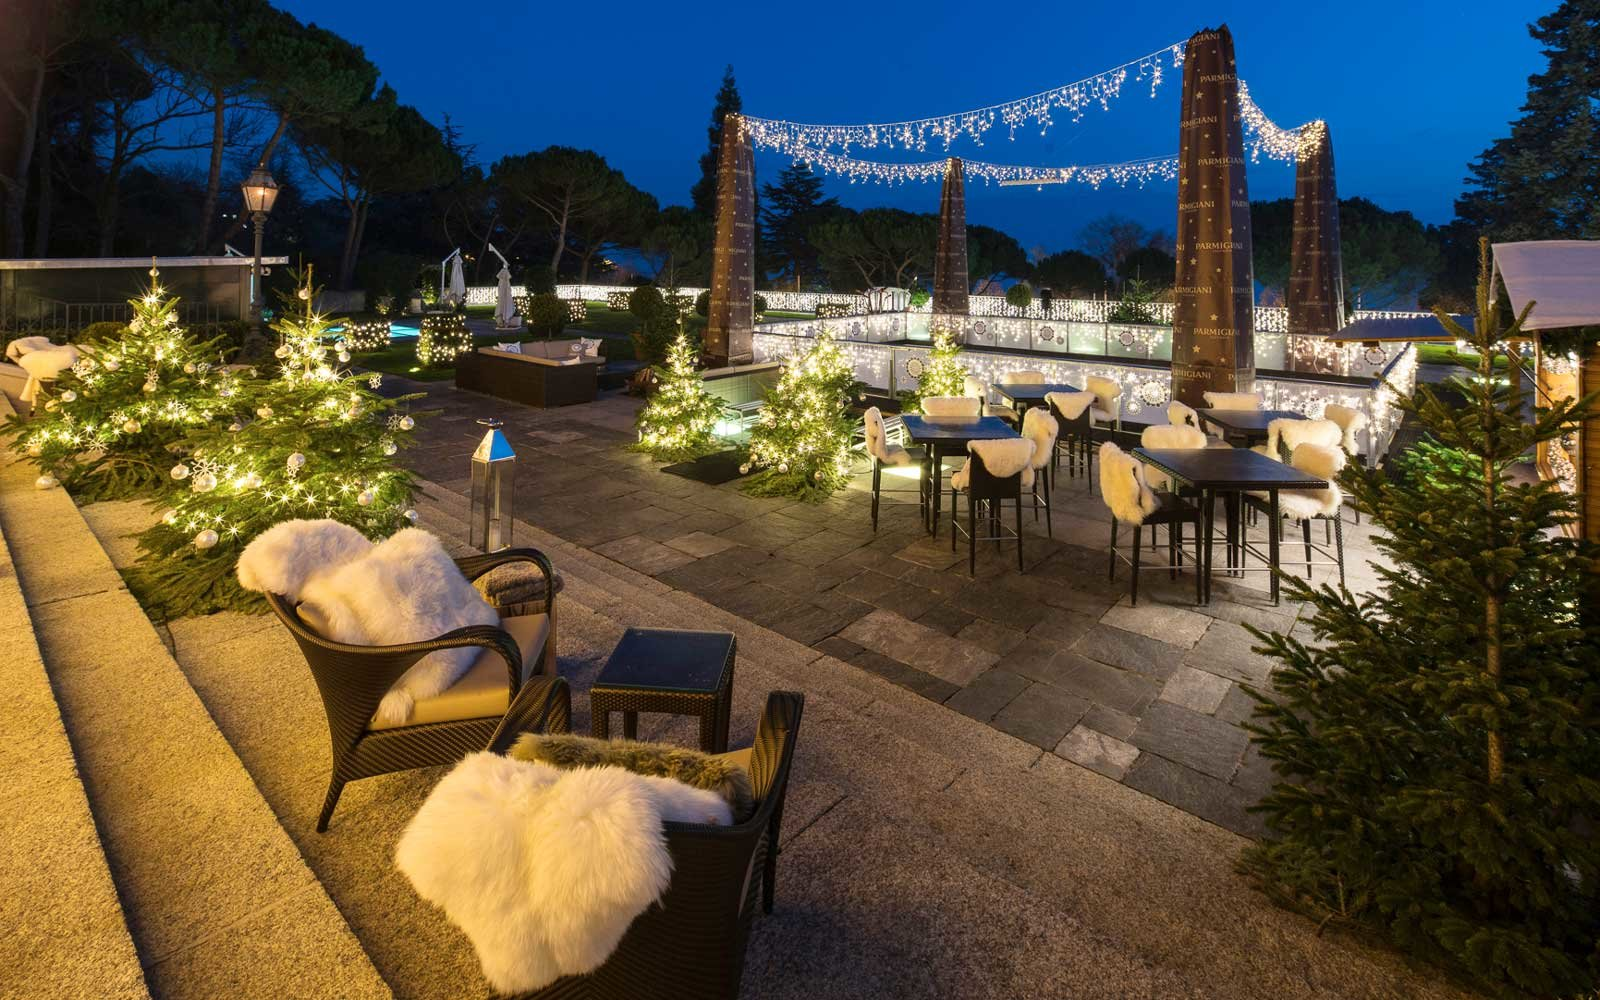 Cozy Winter Terrace of the Beau Rivage Palace Hotel, Lausanne, Switzerland